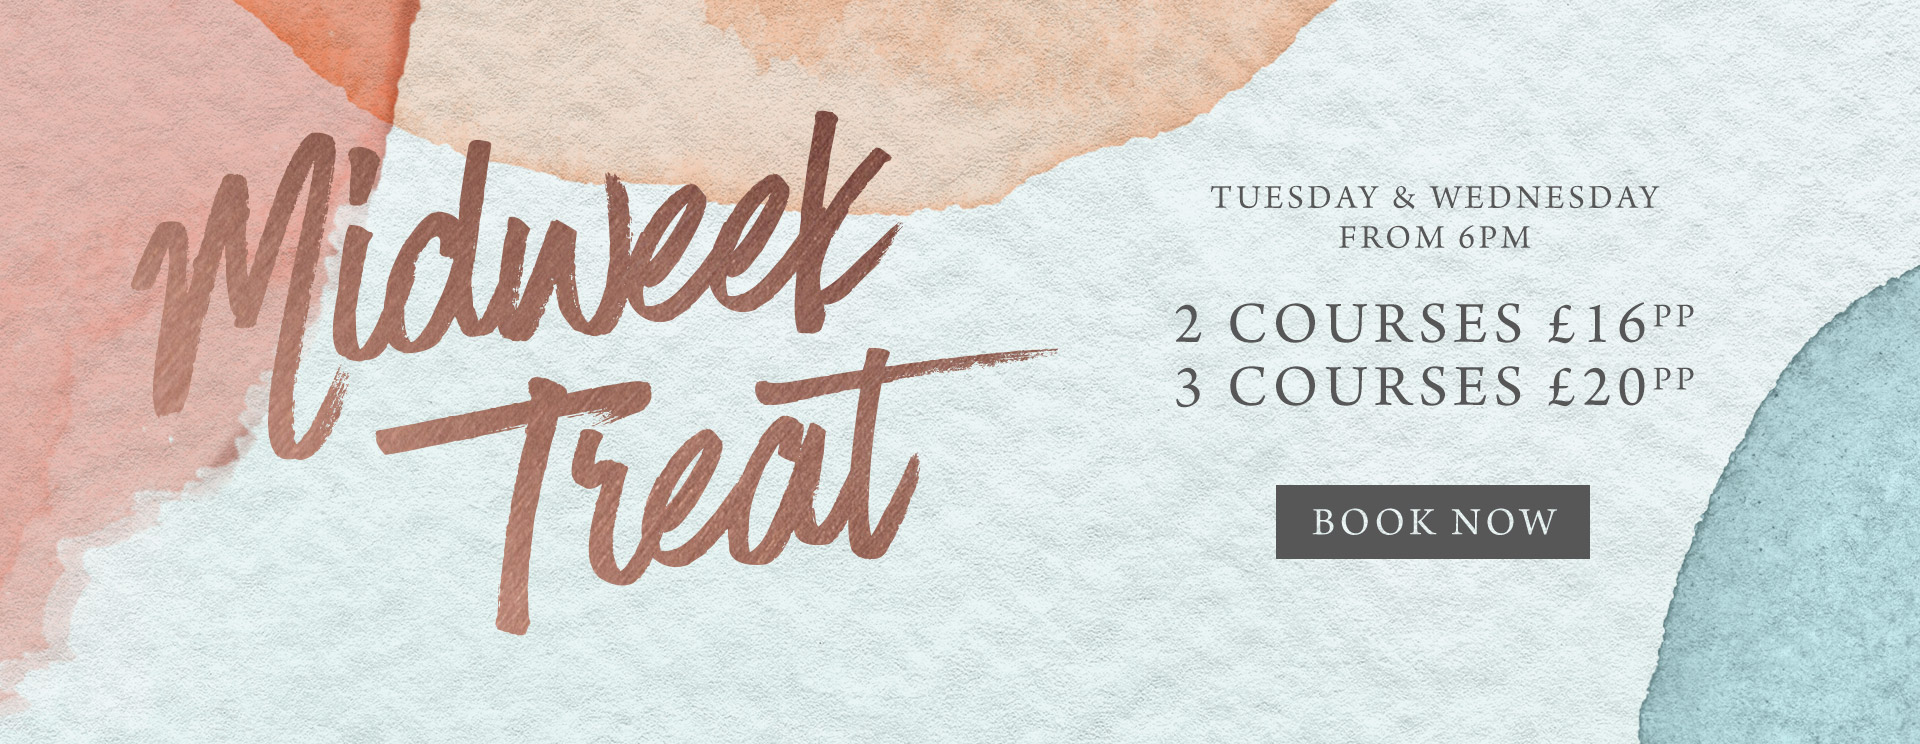 Midweek treat at The Chilworth Arms - Book now